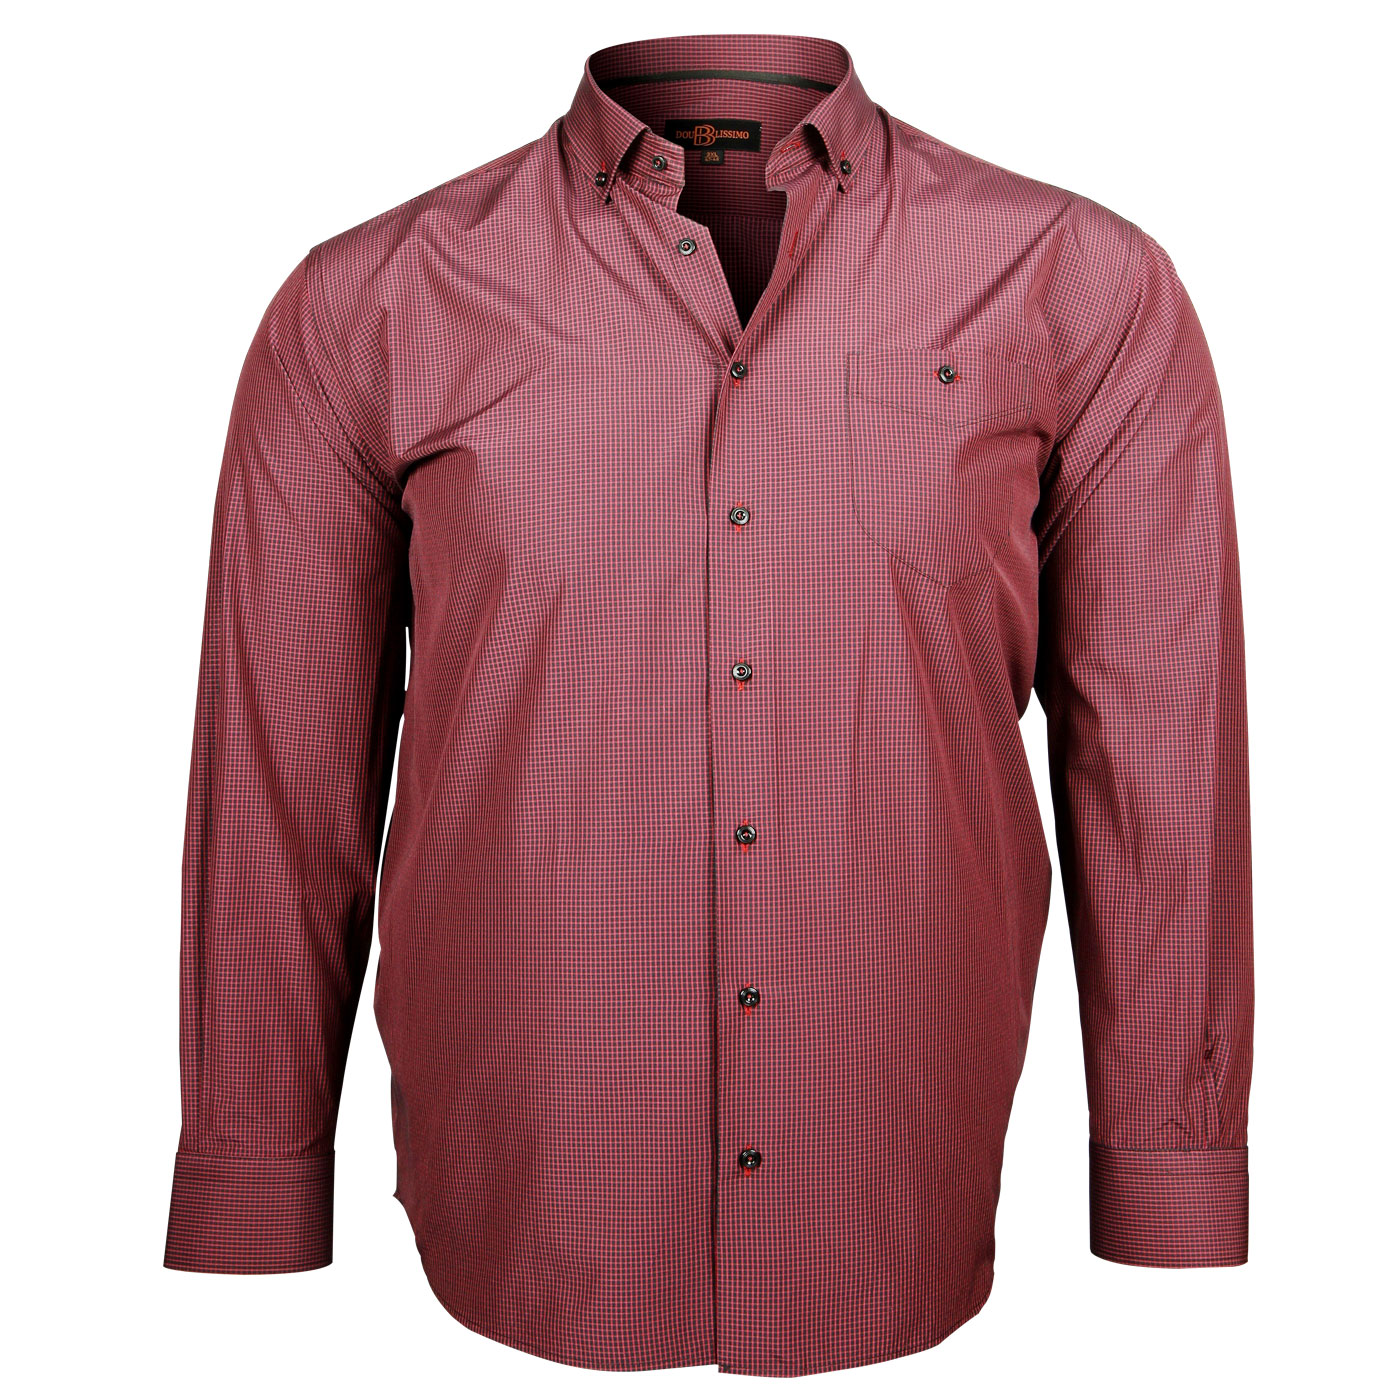 Large  Size Shirts Cheap price  Direct Sale from Manufacturer